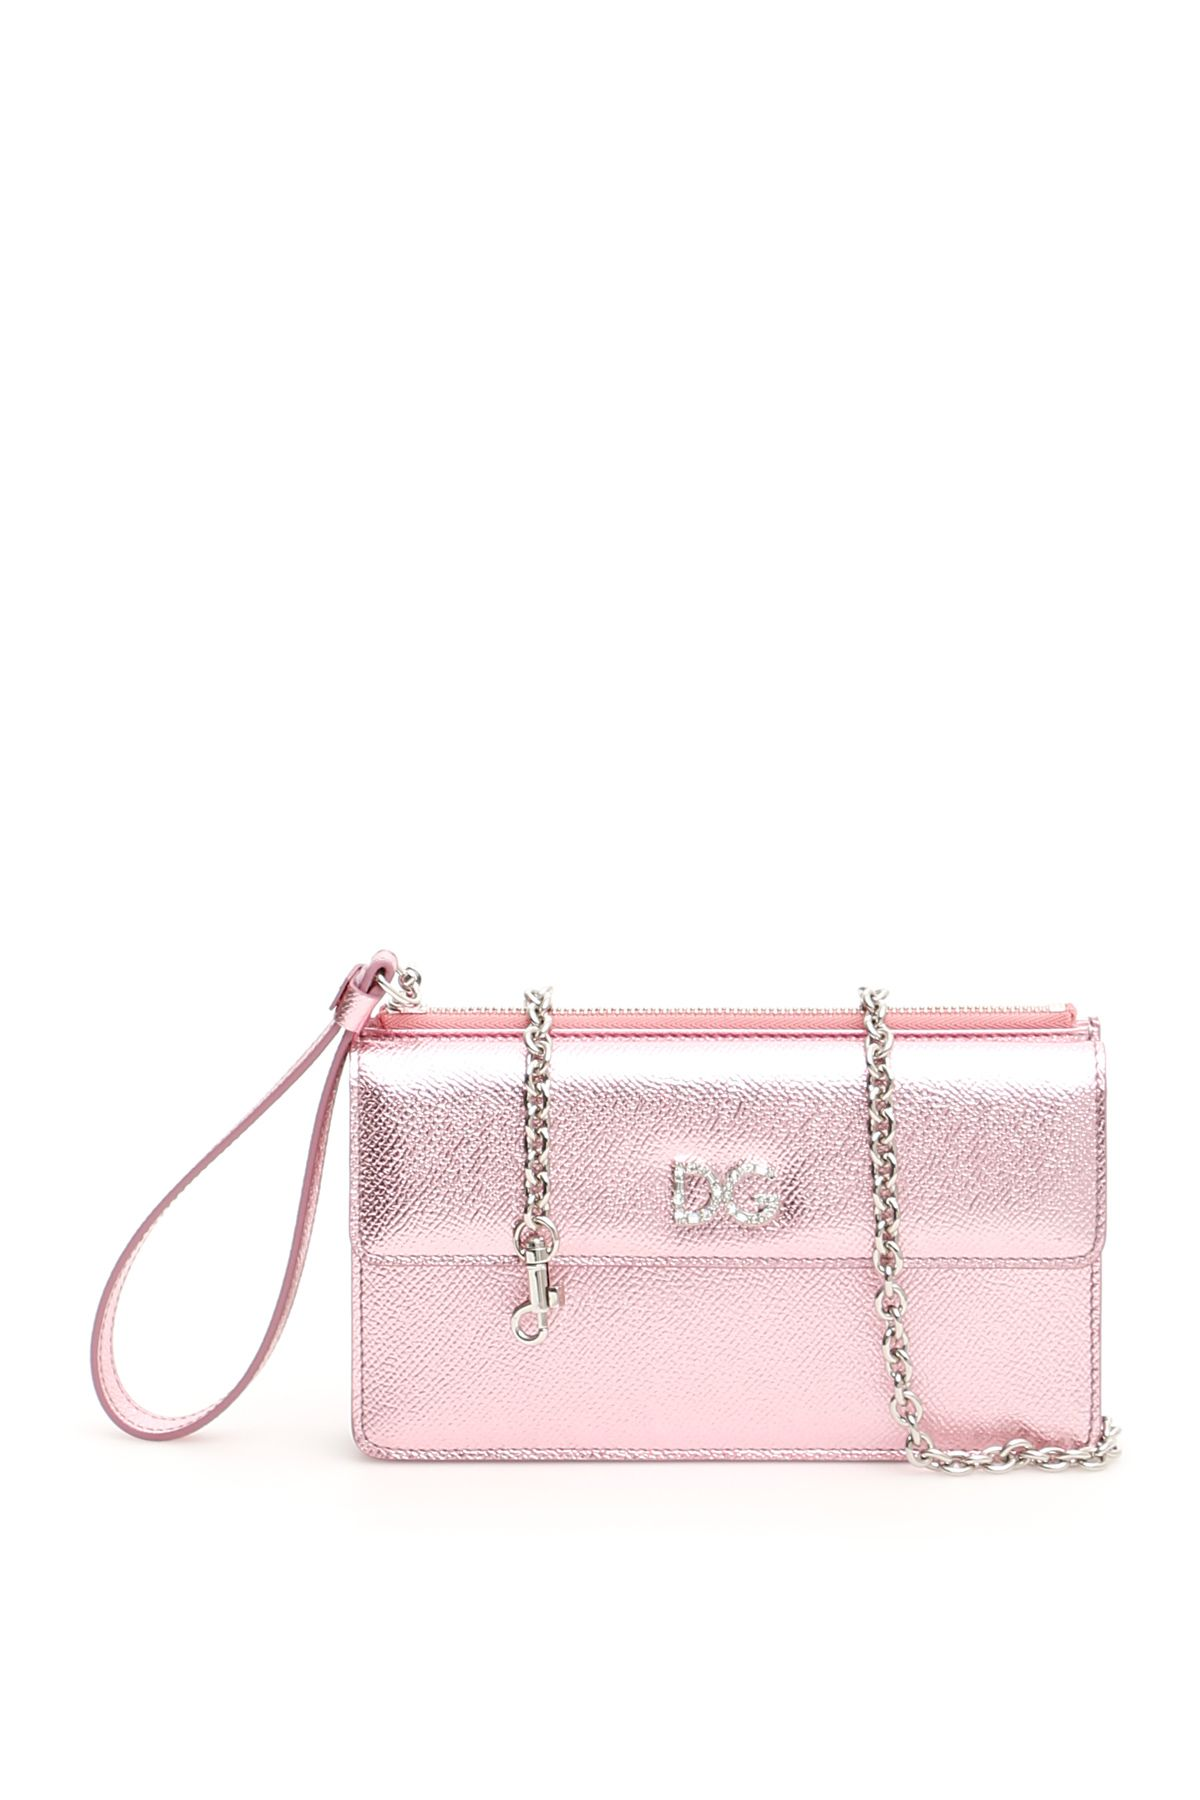 Dolce & Gabbana Phone Bag With Crystal Dg